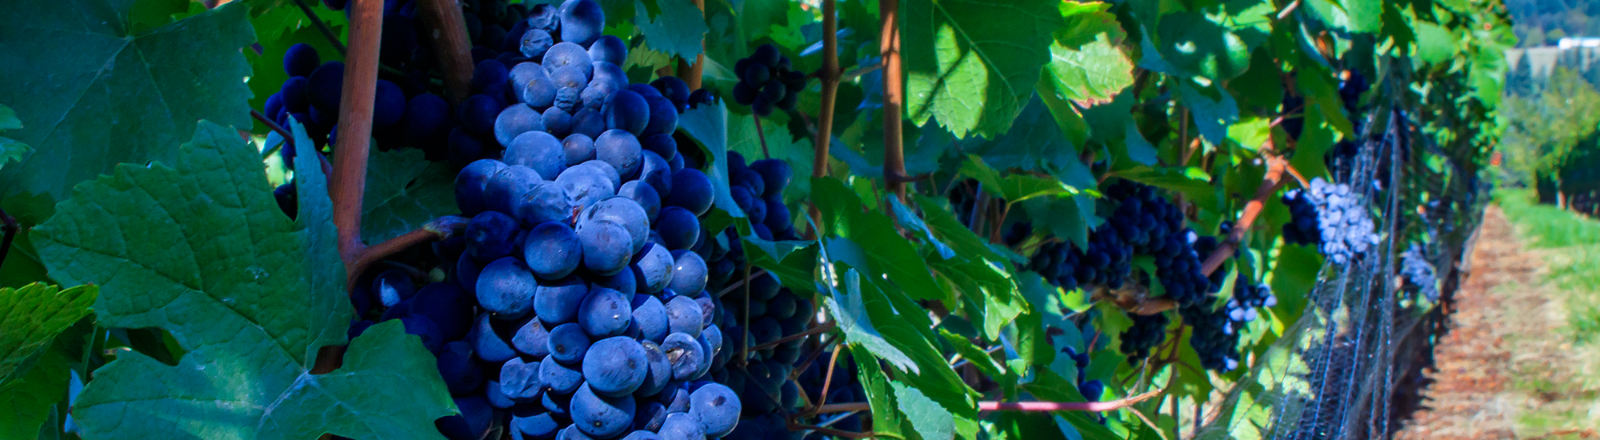 Dark blue-purple Pinot Noir grapes ripe and full of juice on the vine, just waiting to be harvested at King's Raven Winery